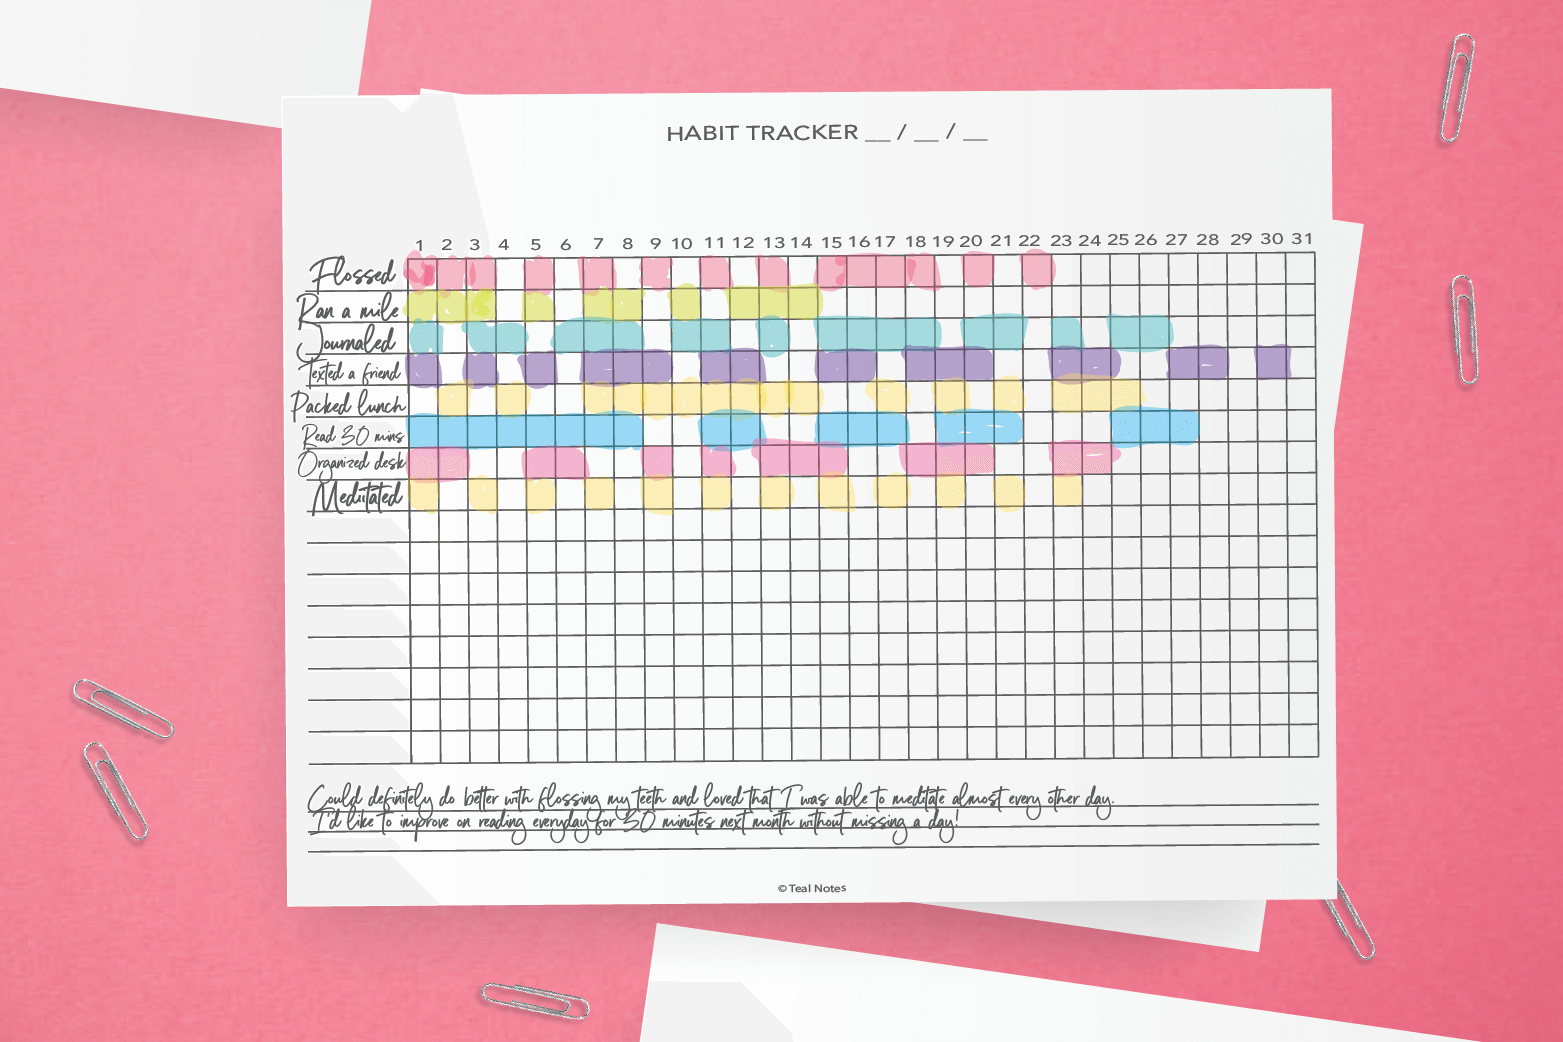 image regarding Bullet Journal Key Printable known as Totally free Printable Practice Tracker PDF: The Final Pattern Tracker